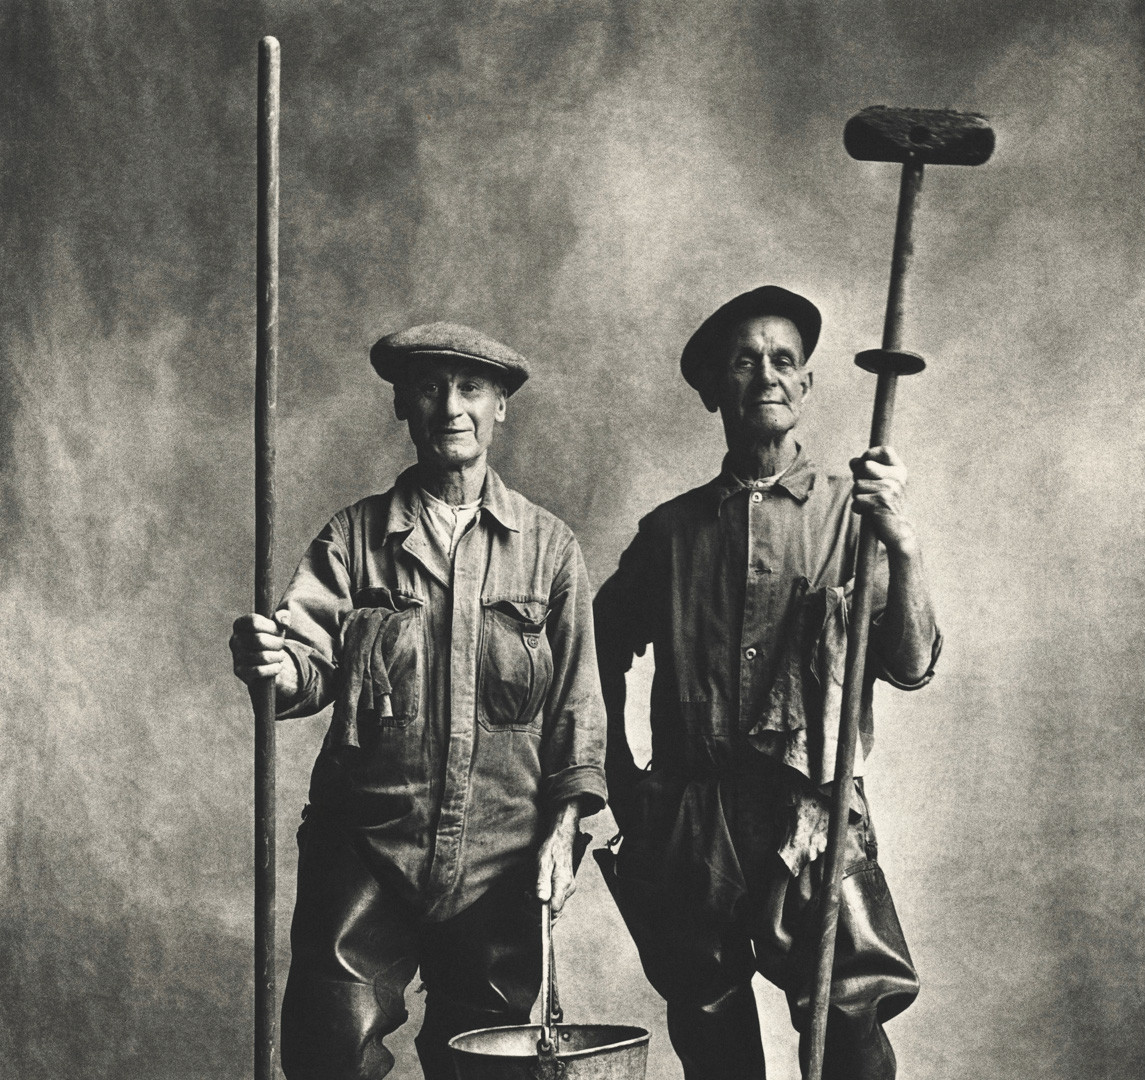 Irving Penn, Lorry Washers, London, 1950